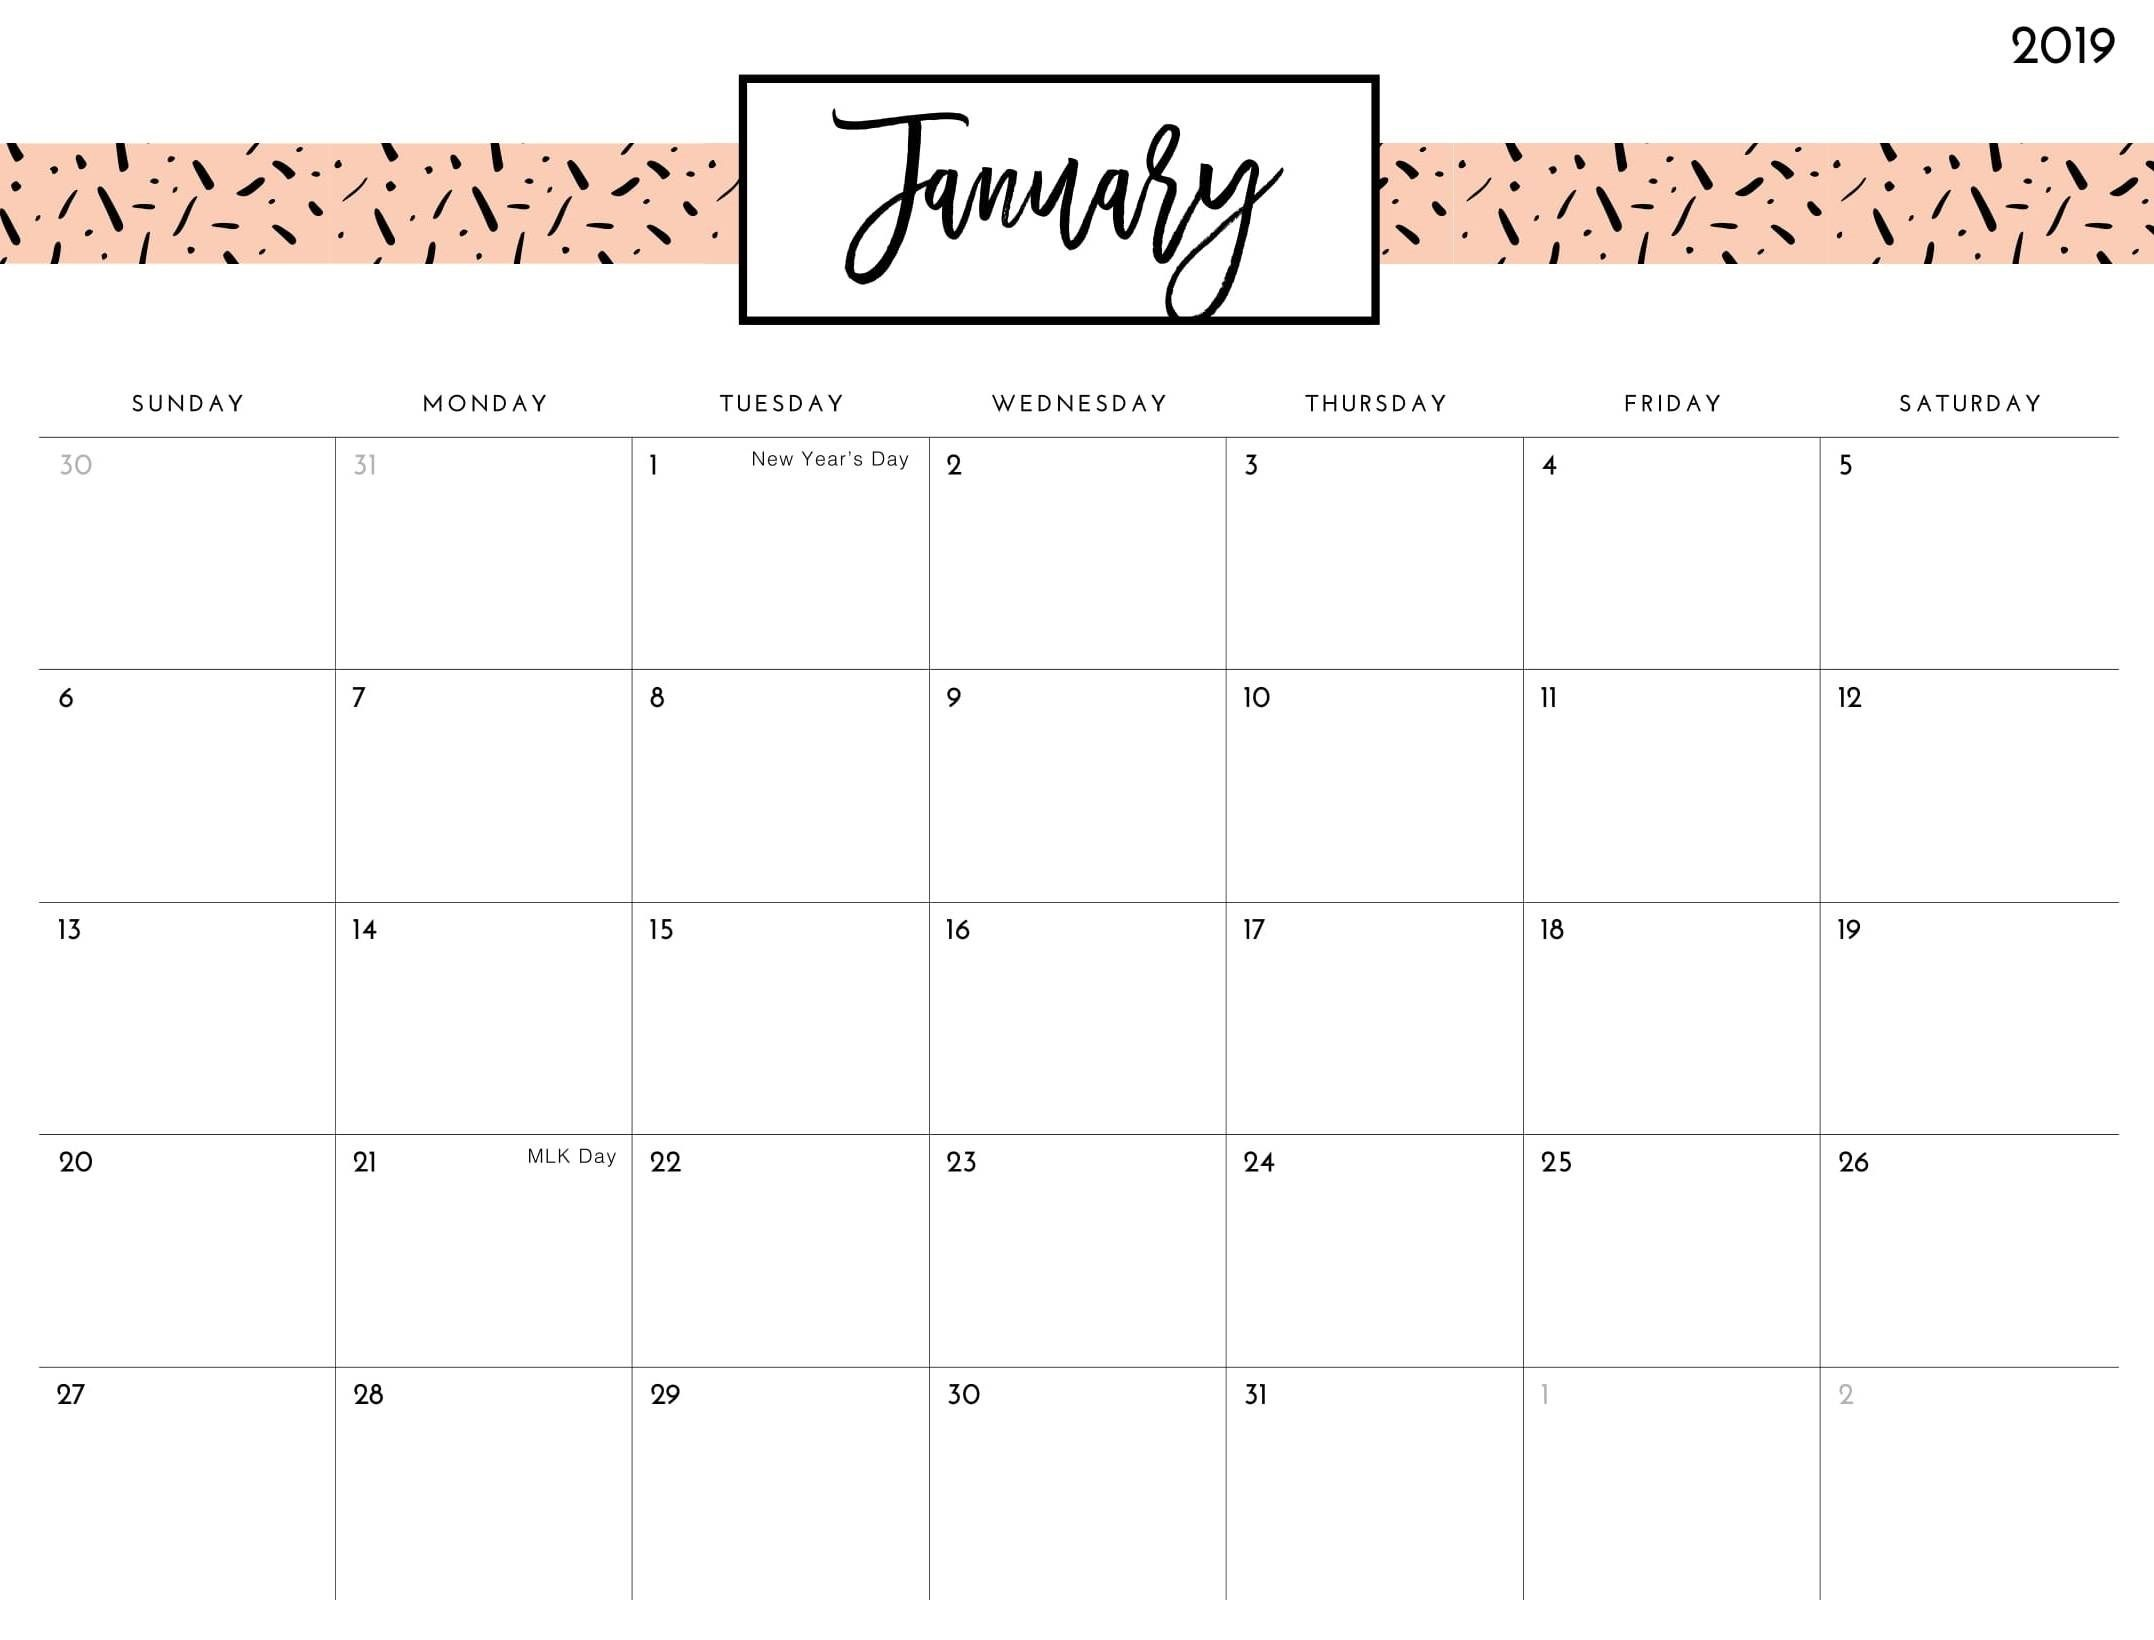 Cute Calendar January 2019 January 2019 Cute Calendar | January 2019 Calendar Printable